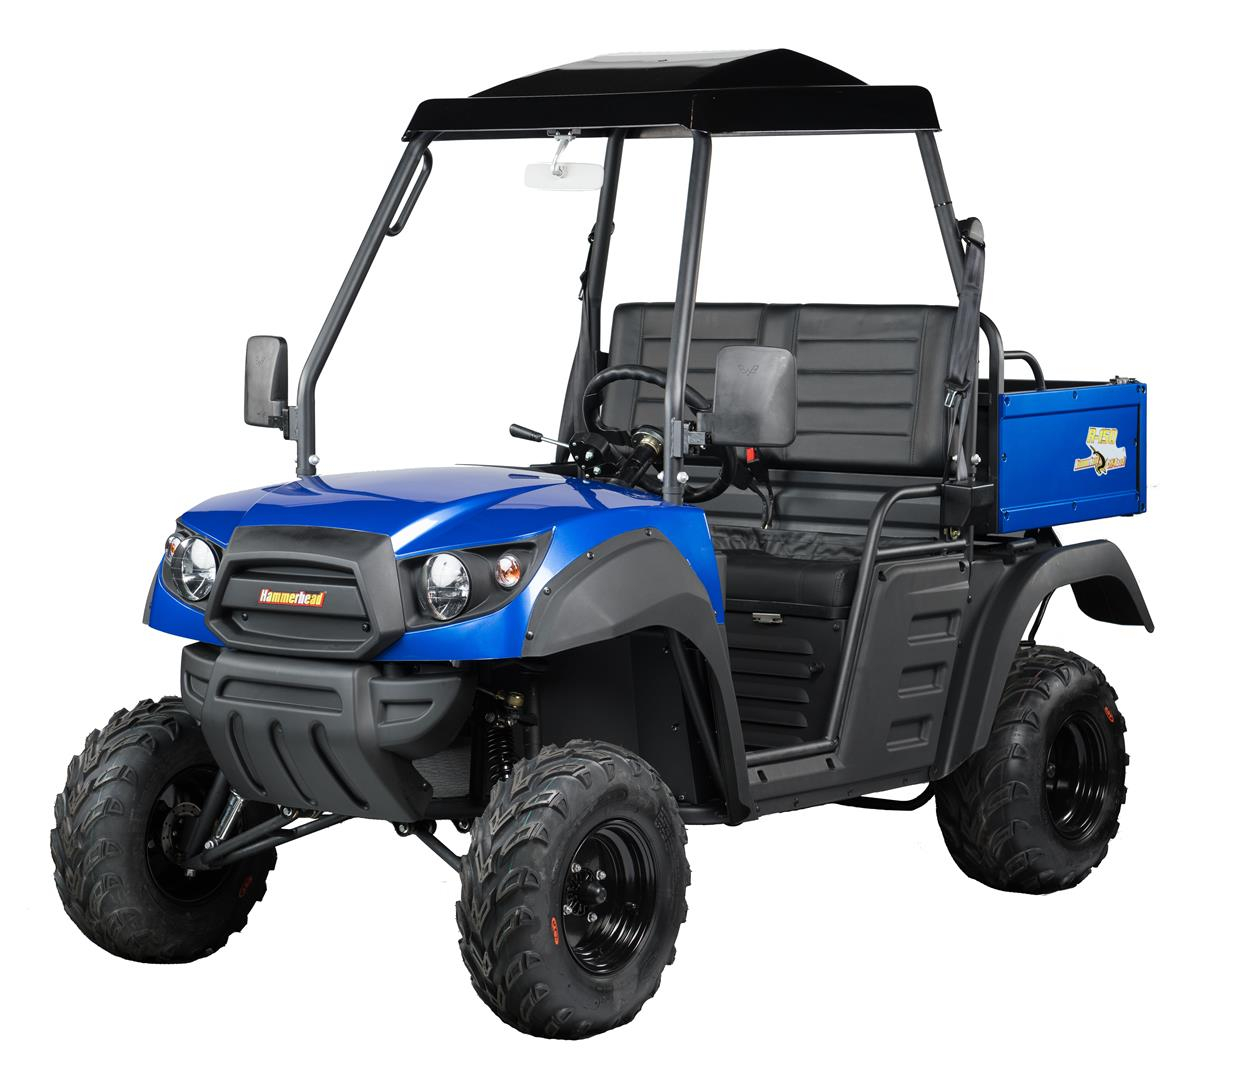 Hammerhead R-150™ Utility Vehicle - Blue